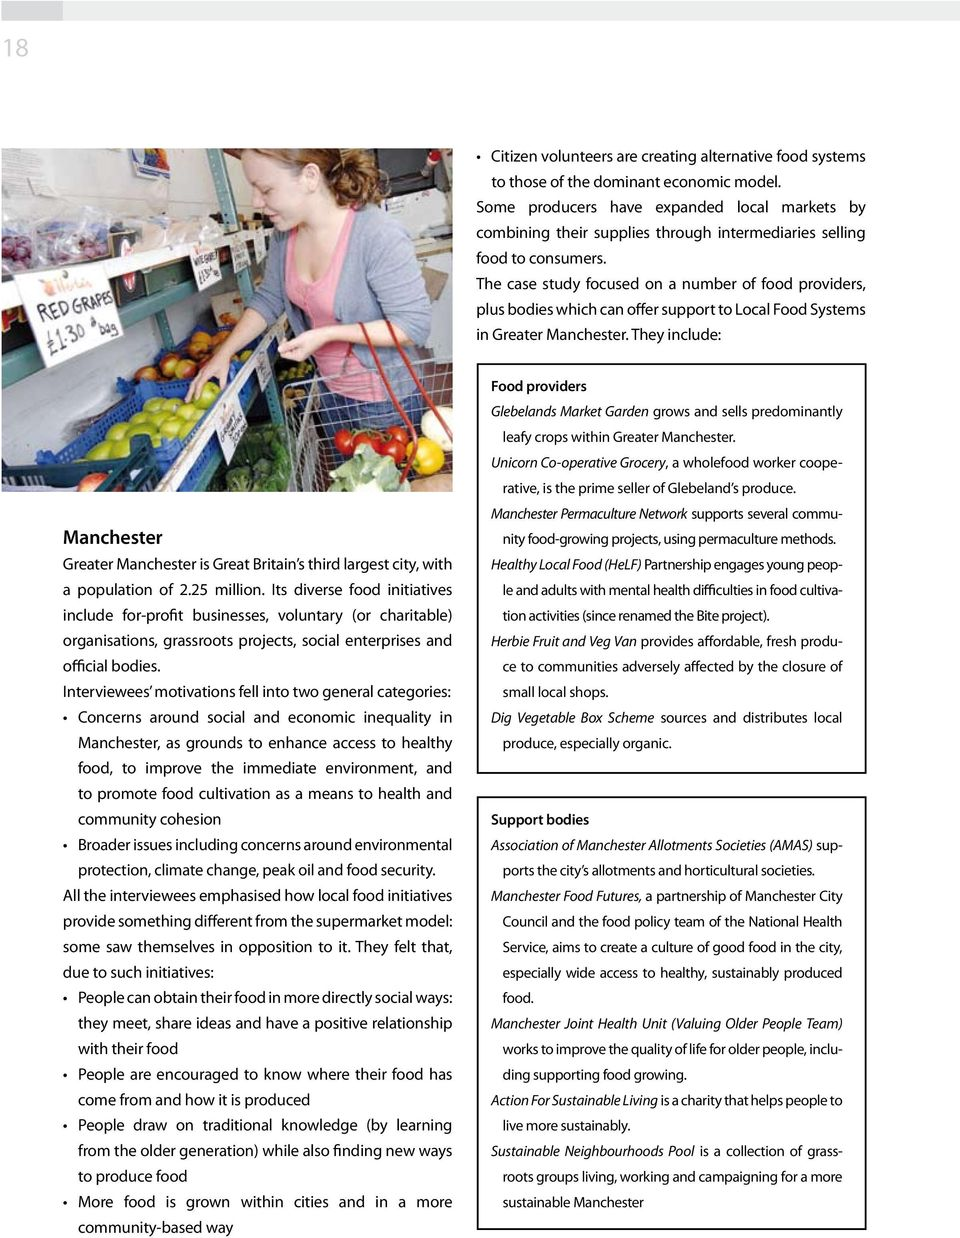 The case study focused on a number of food providers, plus bodies which can offer support to Local Food Systems in Greater Manchester.